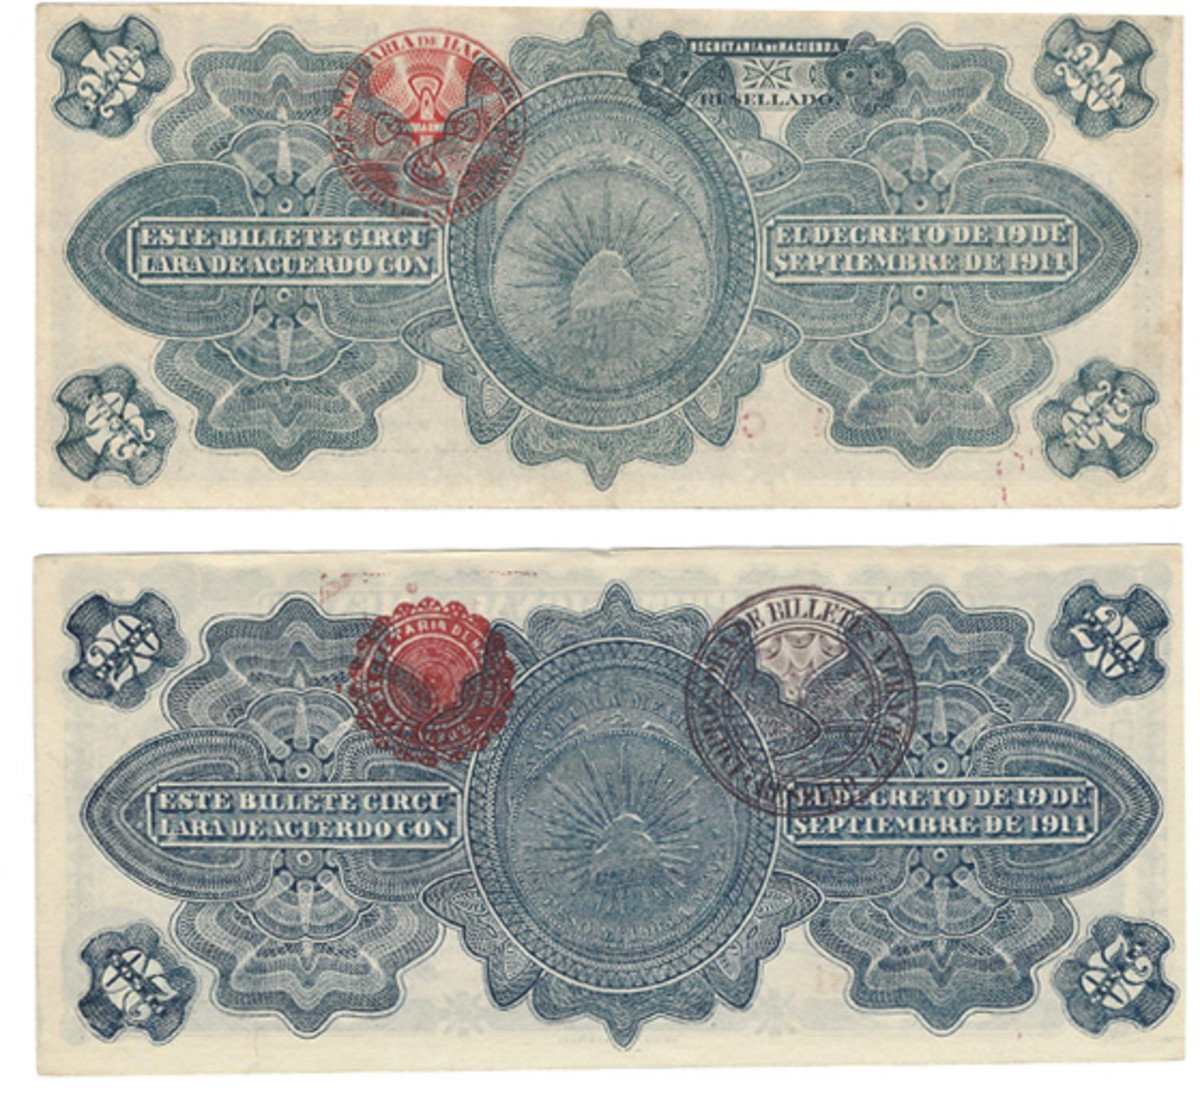 Here are two 20 pesos backs, both dated Dec. 1, 1914. Each has a distinctive pair of overprints on its back, but the faces are similar except for the imprints.